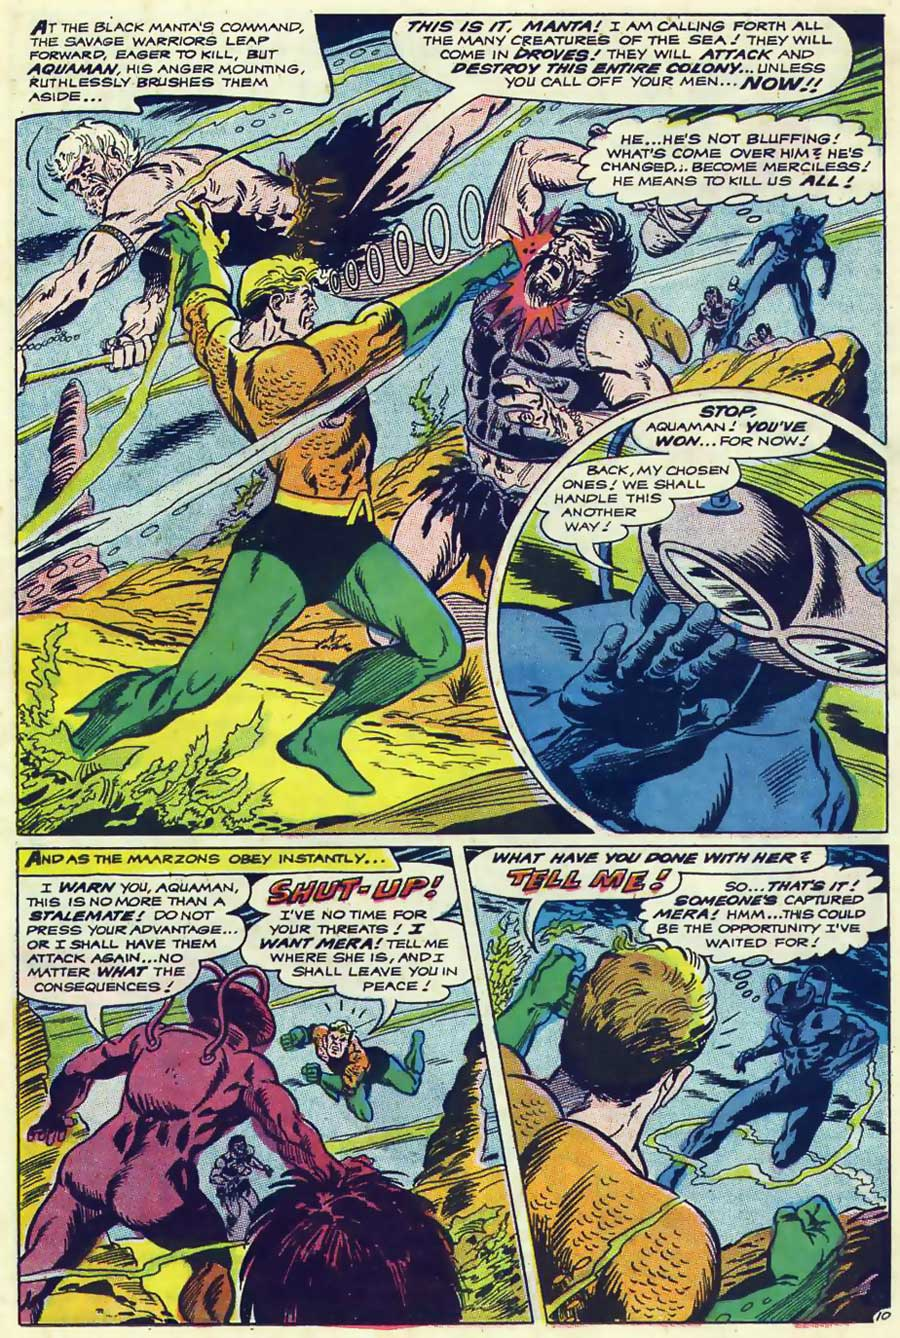 Aquaman #42 by Steve Skeates, Jim Aparo, and Dick Giordano